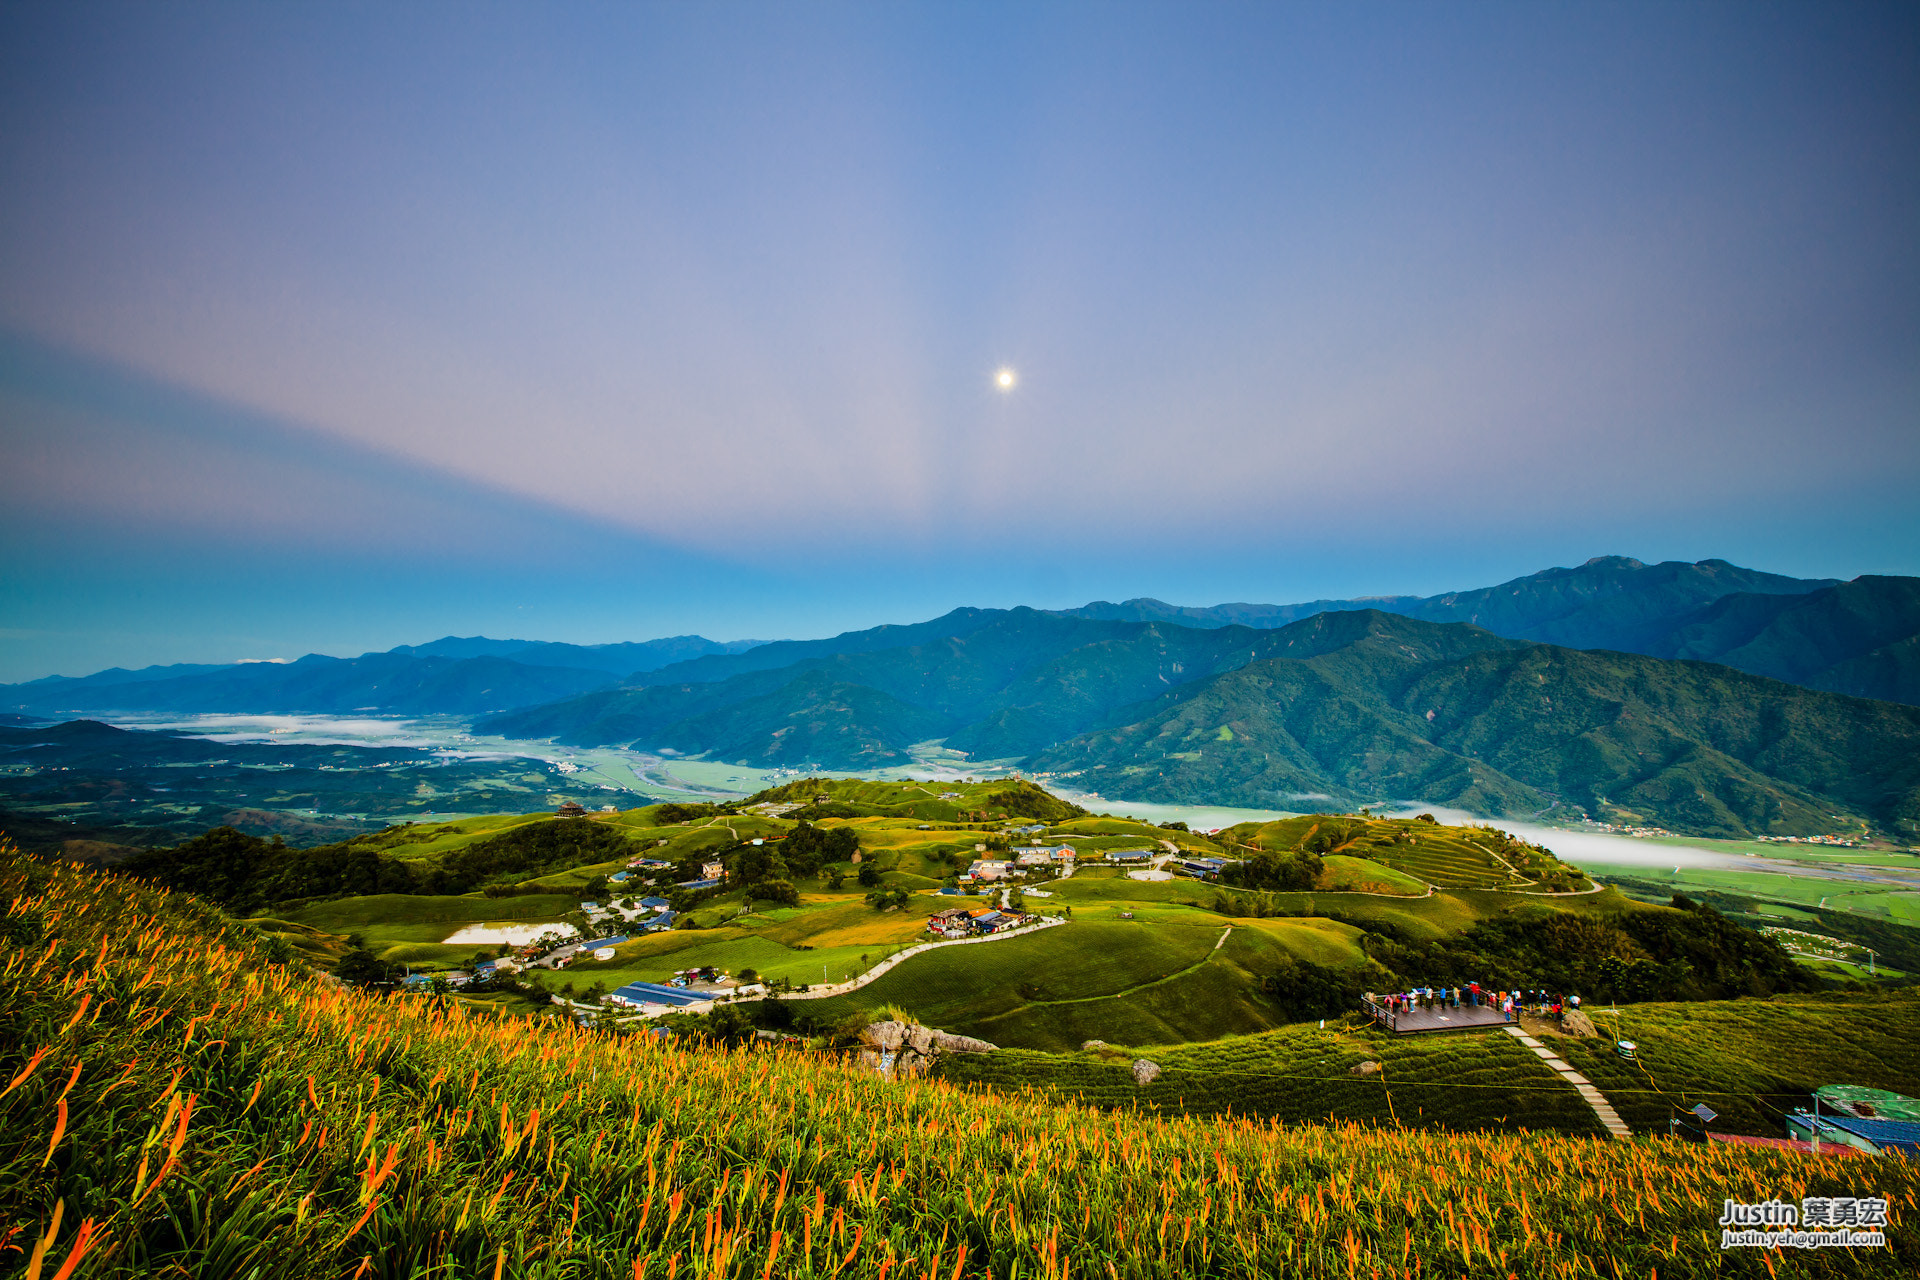 Photograph Hualien Fuli Golden needle_花蓮六十石山-金針花 by Justin Yeh on 500px